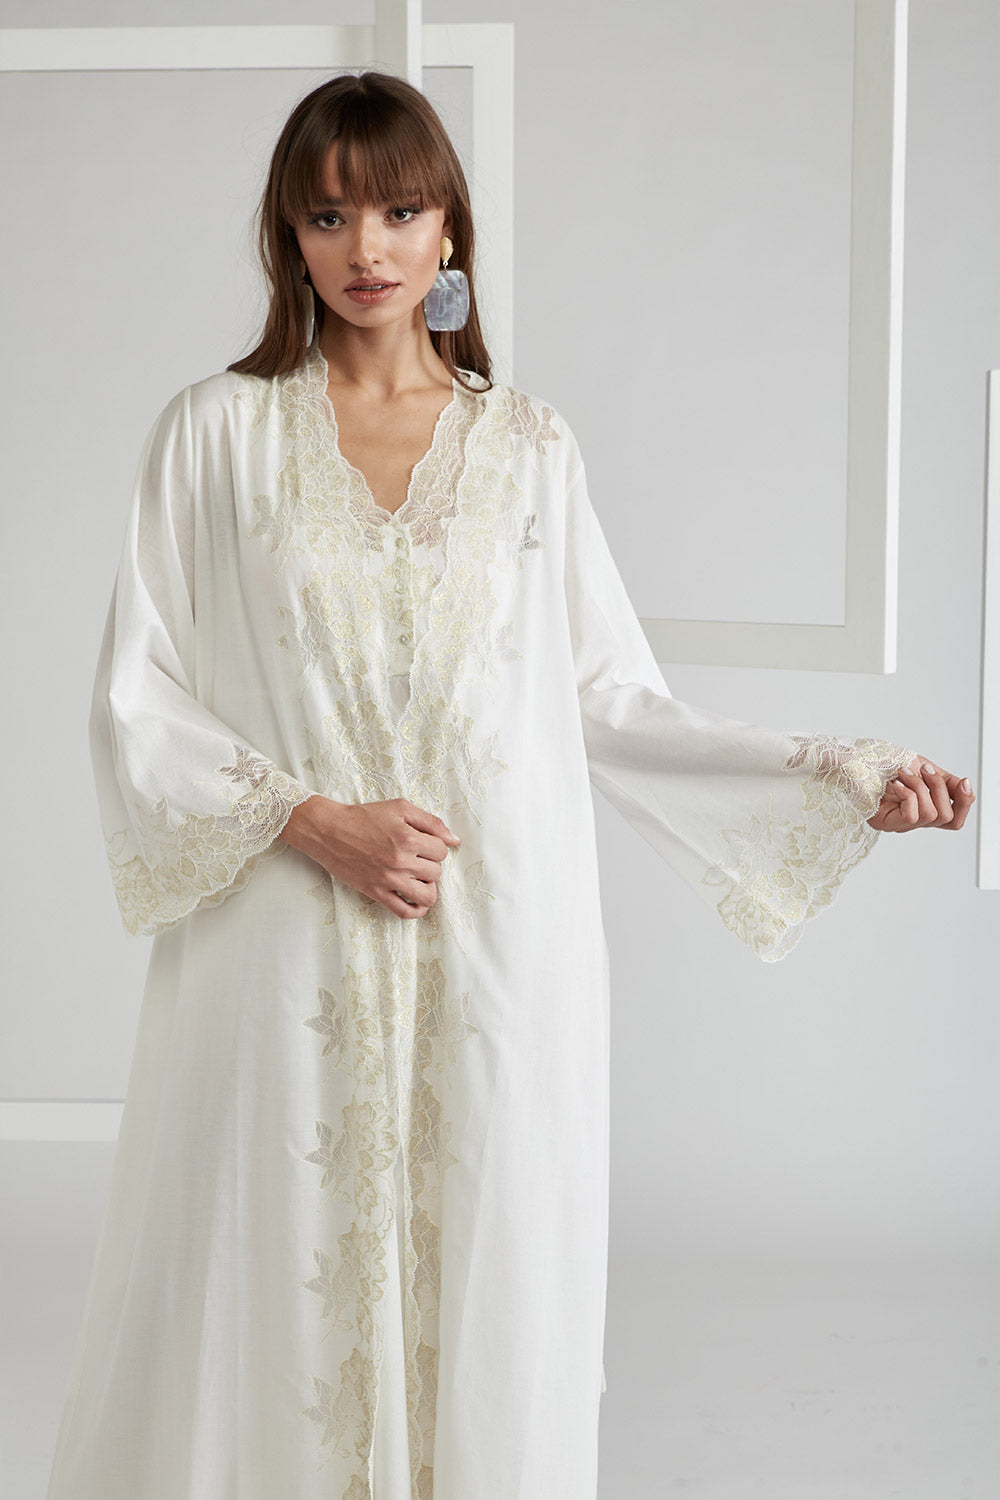 Trimmed Cotton Vual Robe Set - Big Rose ( Gold) Off White